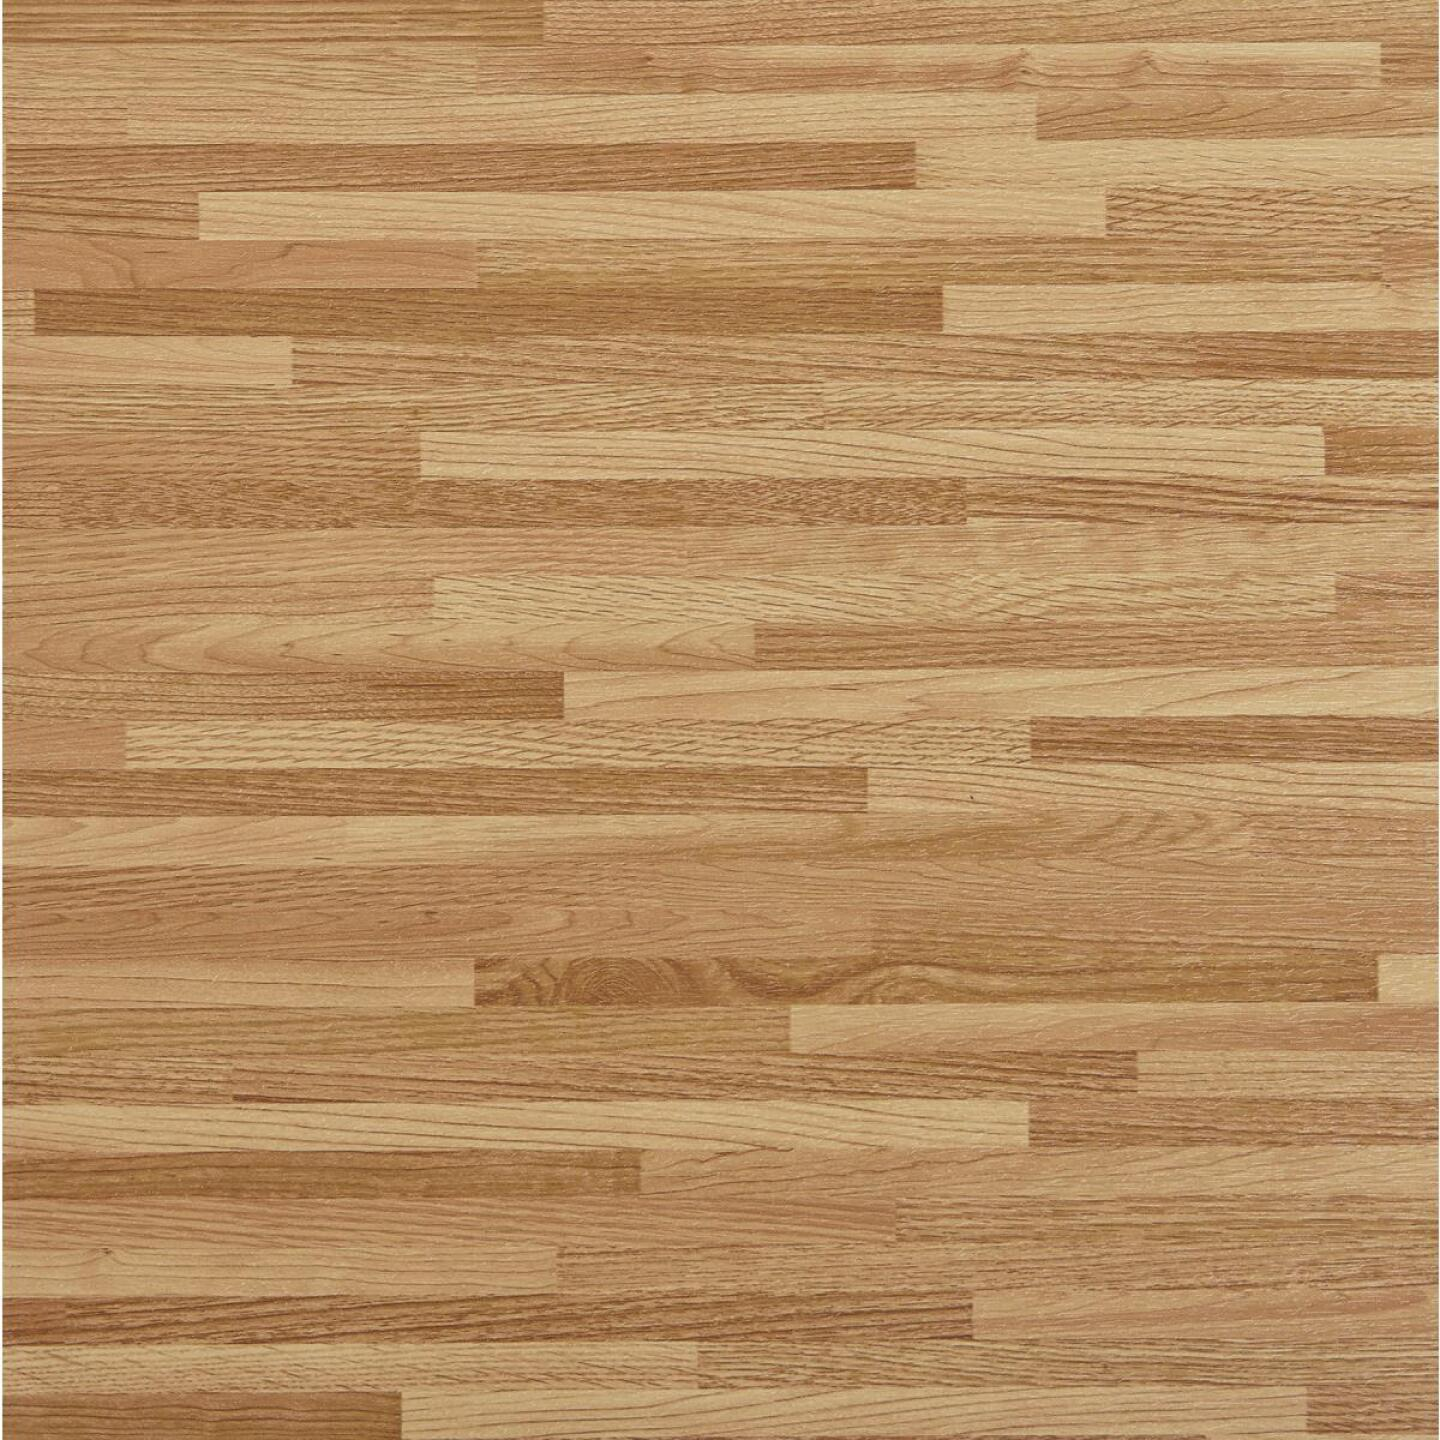 Home Impressions Maple Strip 12 In. x 12 In. Vinyl Floor Tile (45 Sq. Ft./Box) Image 1